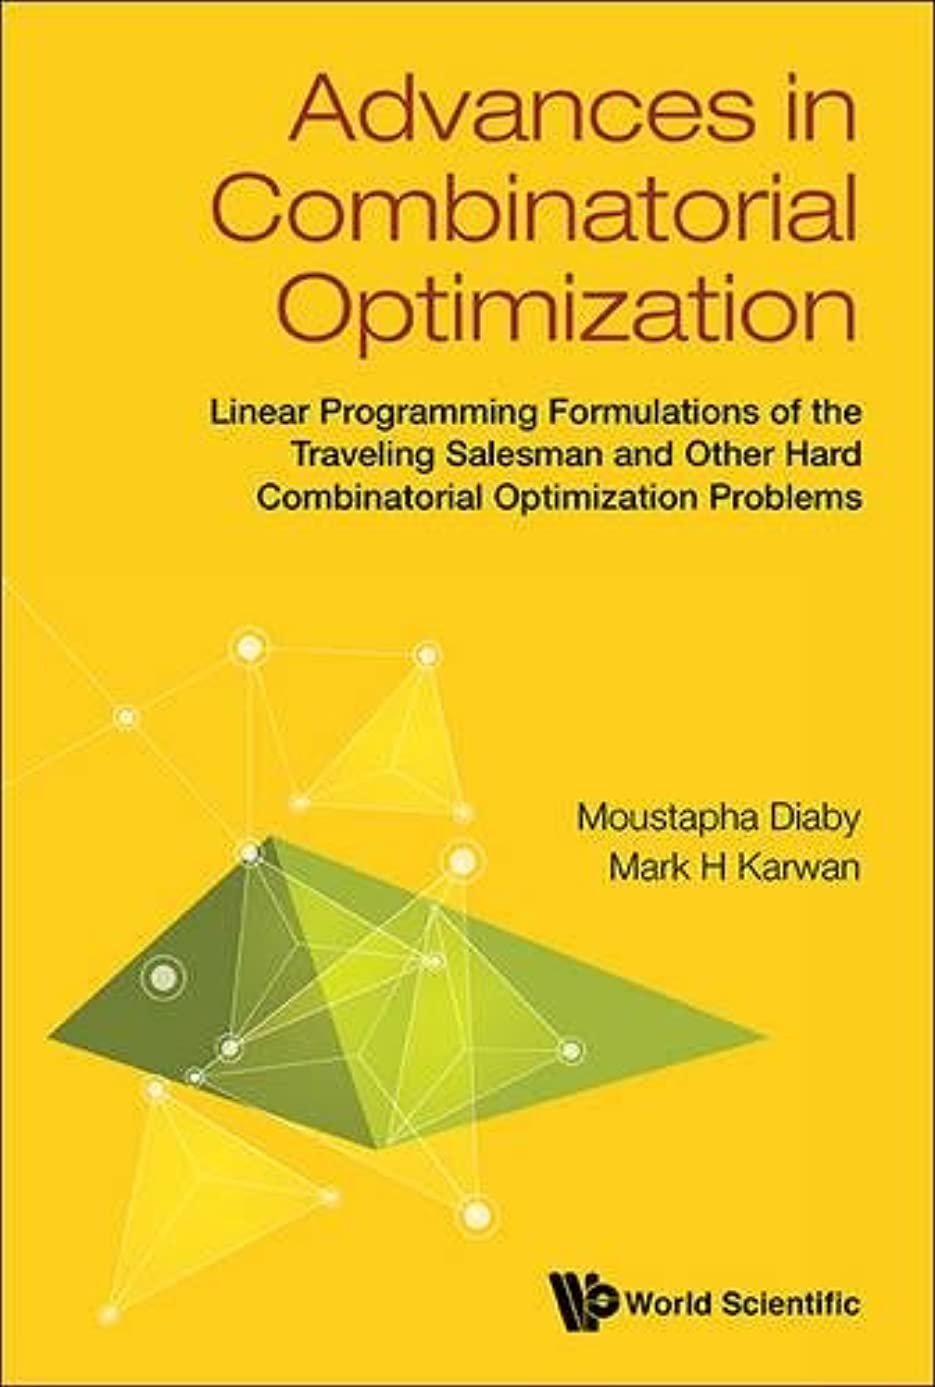 治療アレイ過ちAdvances in Combinatorial Optimization: Linear Programming Formulations of the Traveling Salesman and Other Hard Combinatorial Optimization Problems